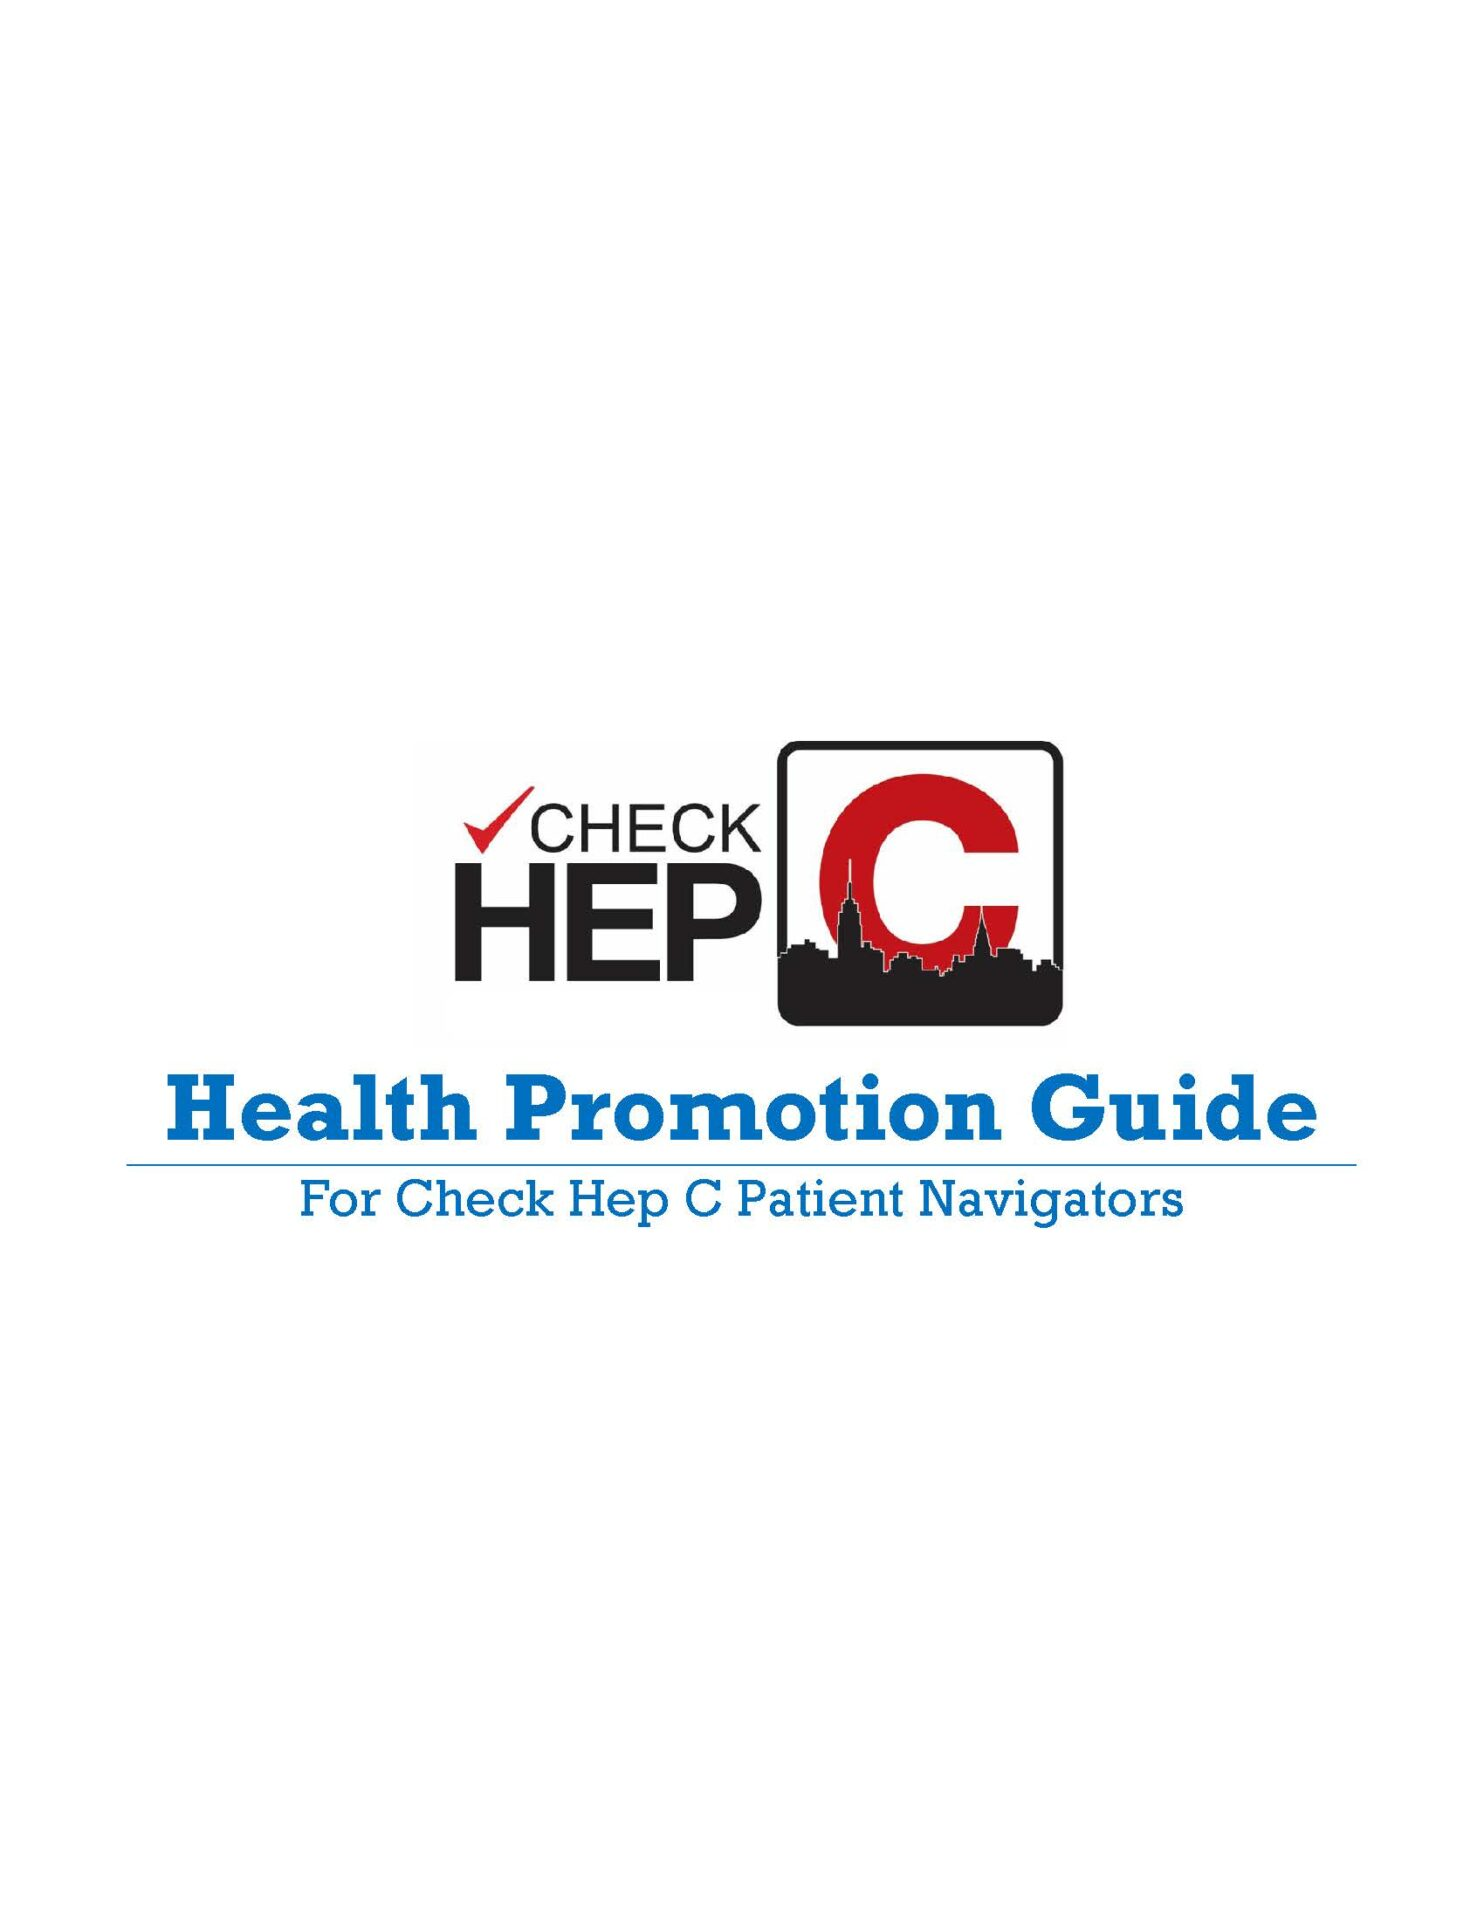 Program Check Hep C Health Promotion Guide 2016